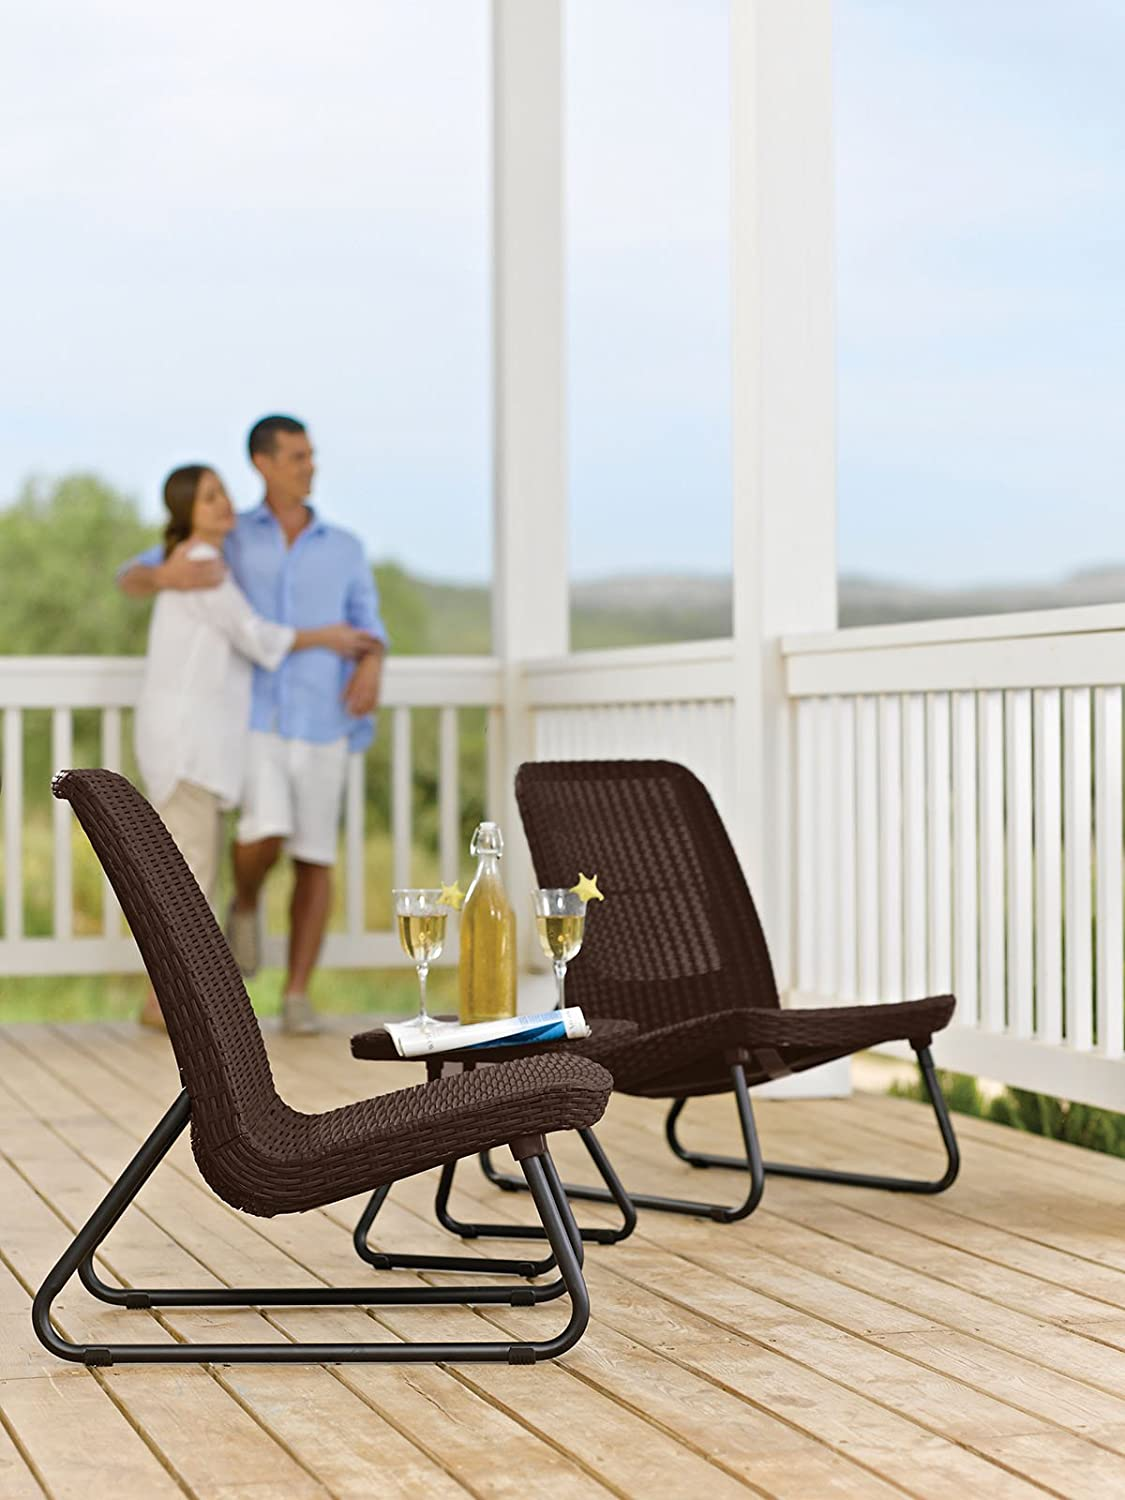 comfortable porch furniture. amazoncom keter rio 3 pc all weather outdoor patio garden conversation chair u0026 table set furniture brown lawn comfortable porch o